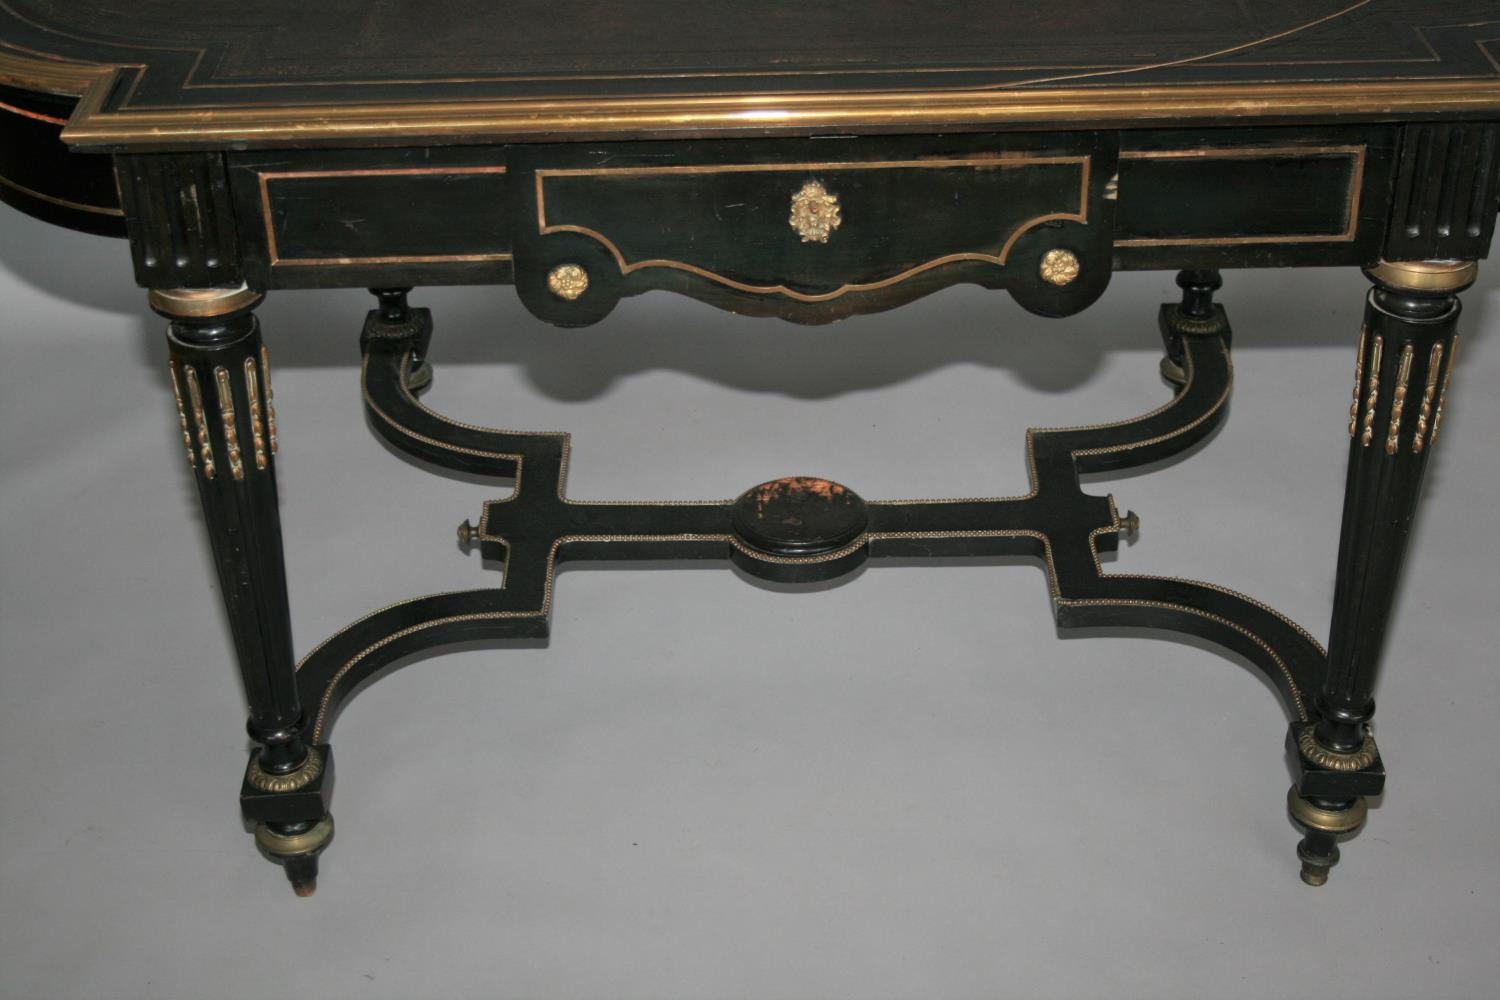 19th Century ebonised and brass mounted centre table with frieze drawer as found 152 W x 76 H x 90 - Image 2 of 3